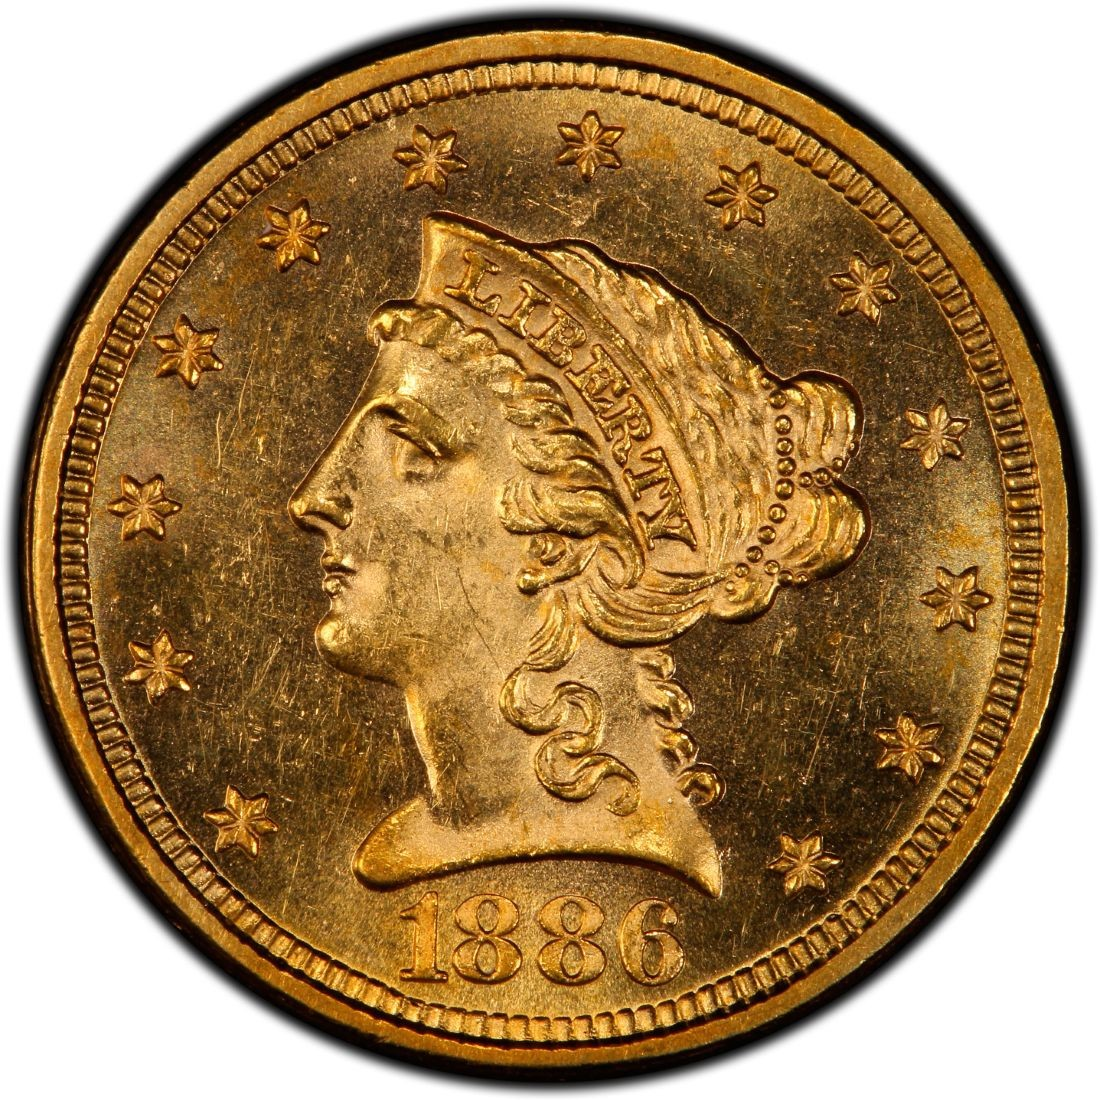 1886 Liberty Head 2 50 Gold Quarter Eagle Coin Values And